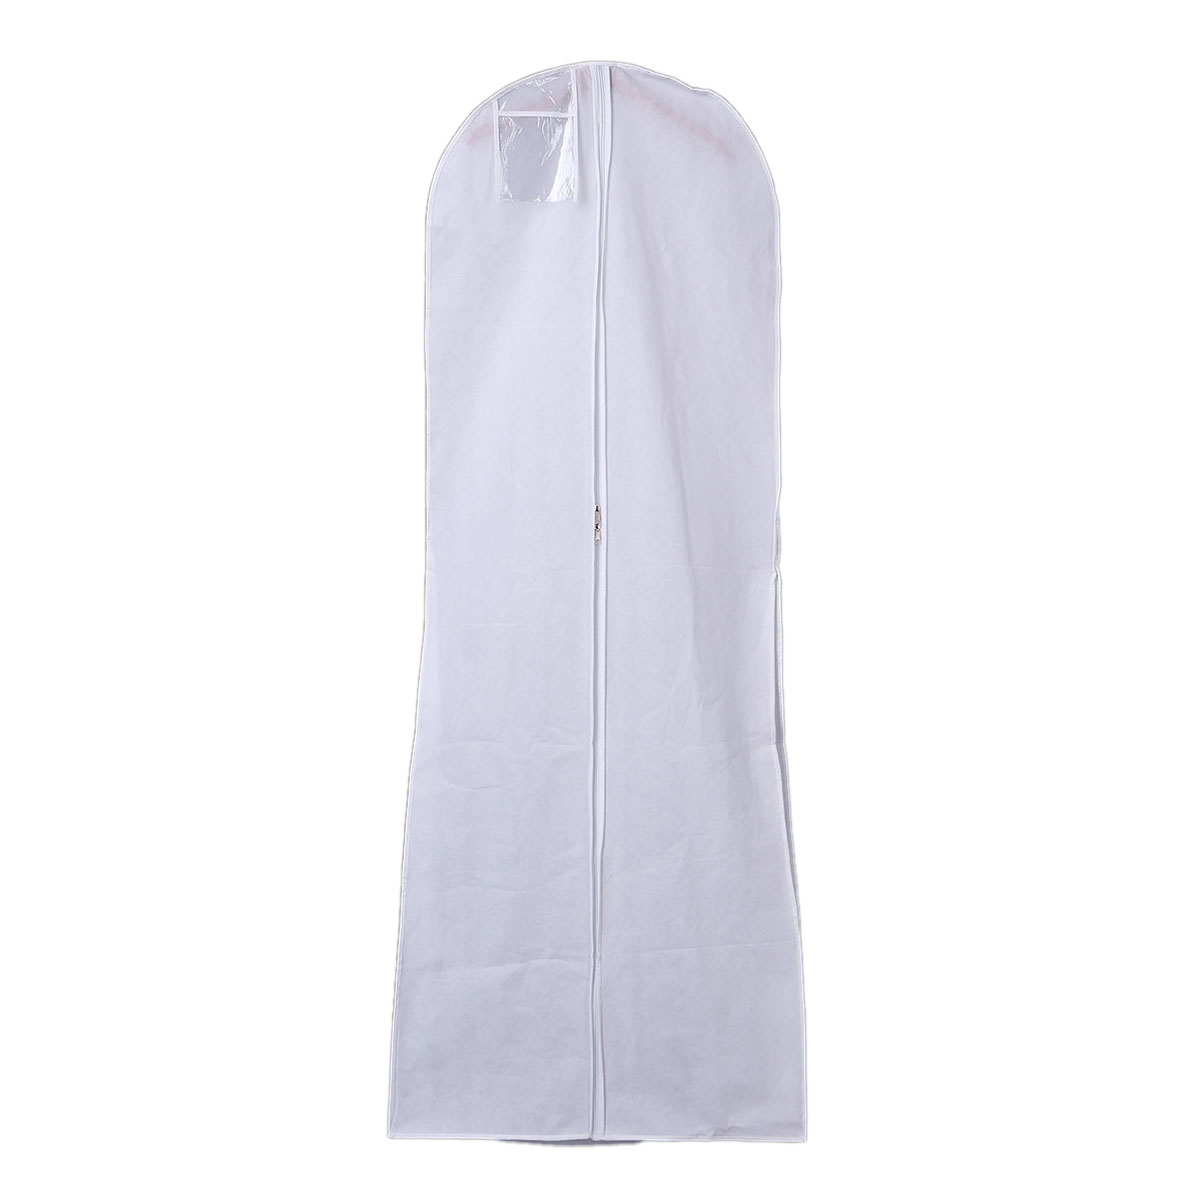 LHLL-Hanging Wedding Dress Bridal Gown Garment Cover Storage Bag Carry Zip Dustproof White(China (Mainland))